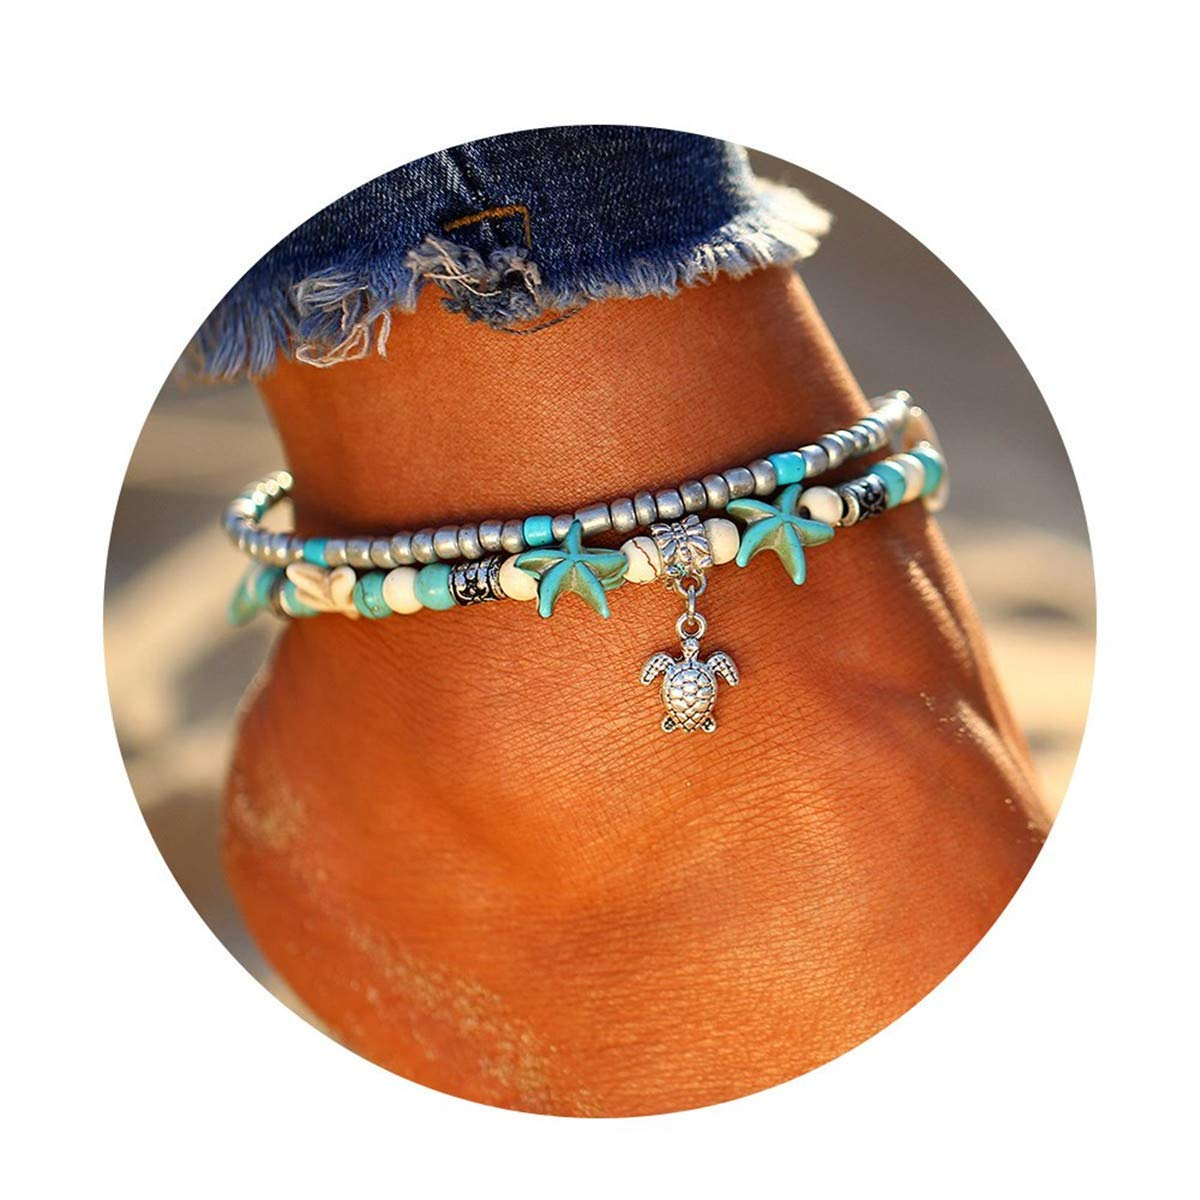 XYIYI Blue Starfish Turtle Anklet Multilayer Charm Beads Sea Handmade Boho Anklet Foot Jewelry for Women Girl